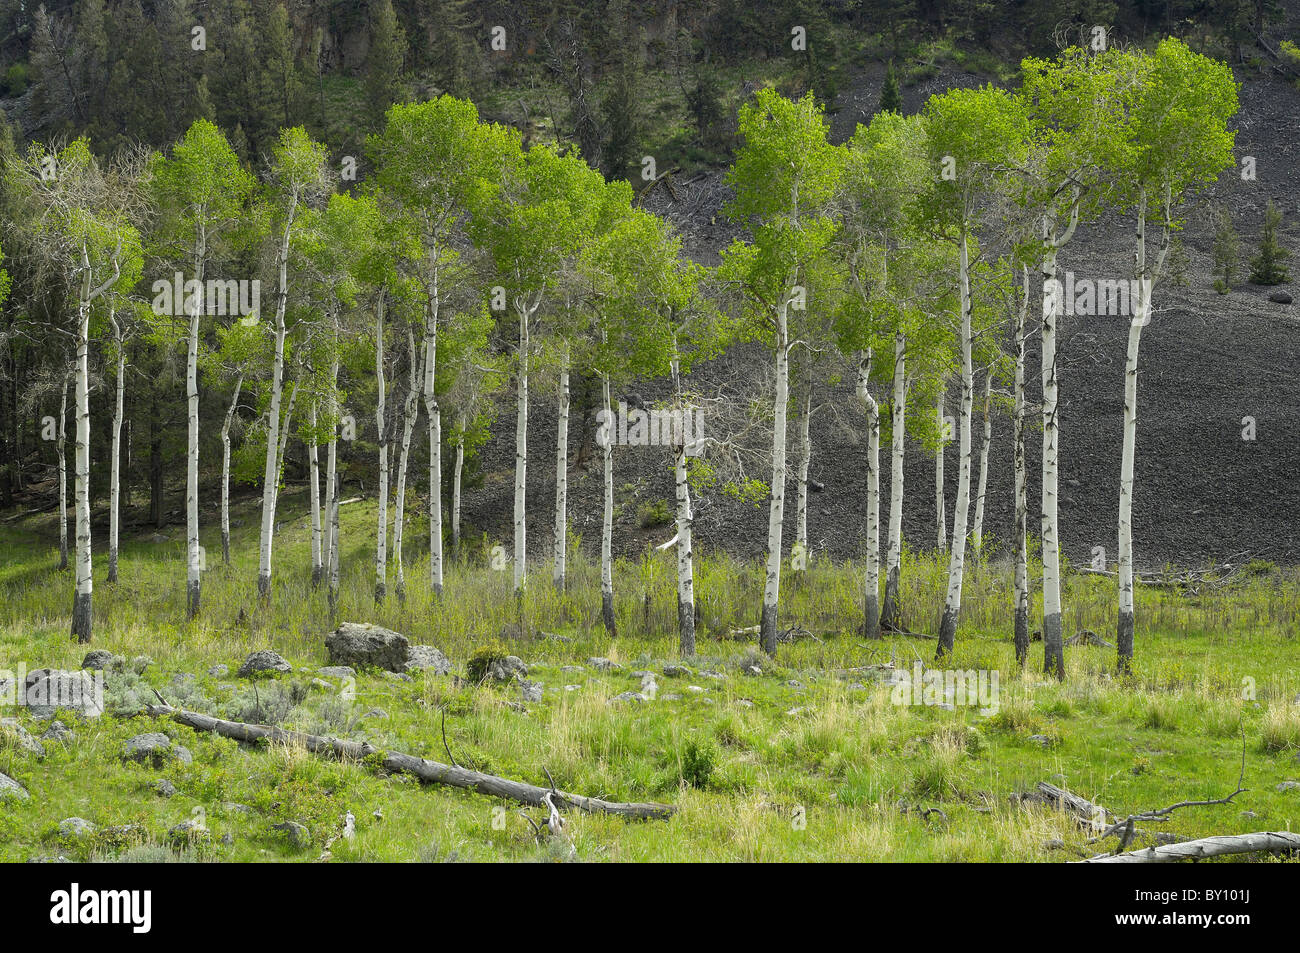 Aspen trees against a rocky cliff in Yellowstone National Park. - Stock Image